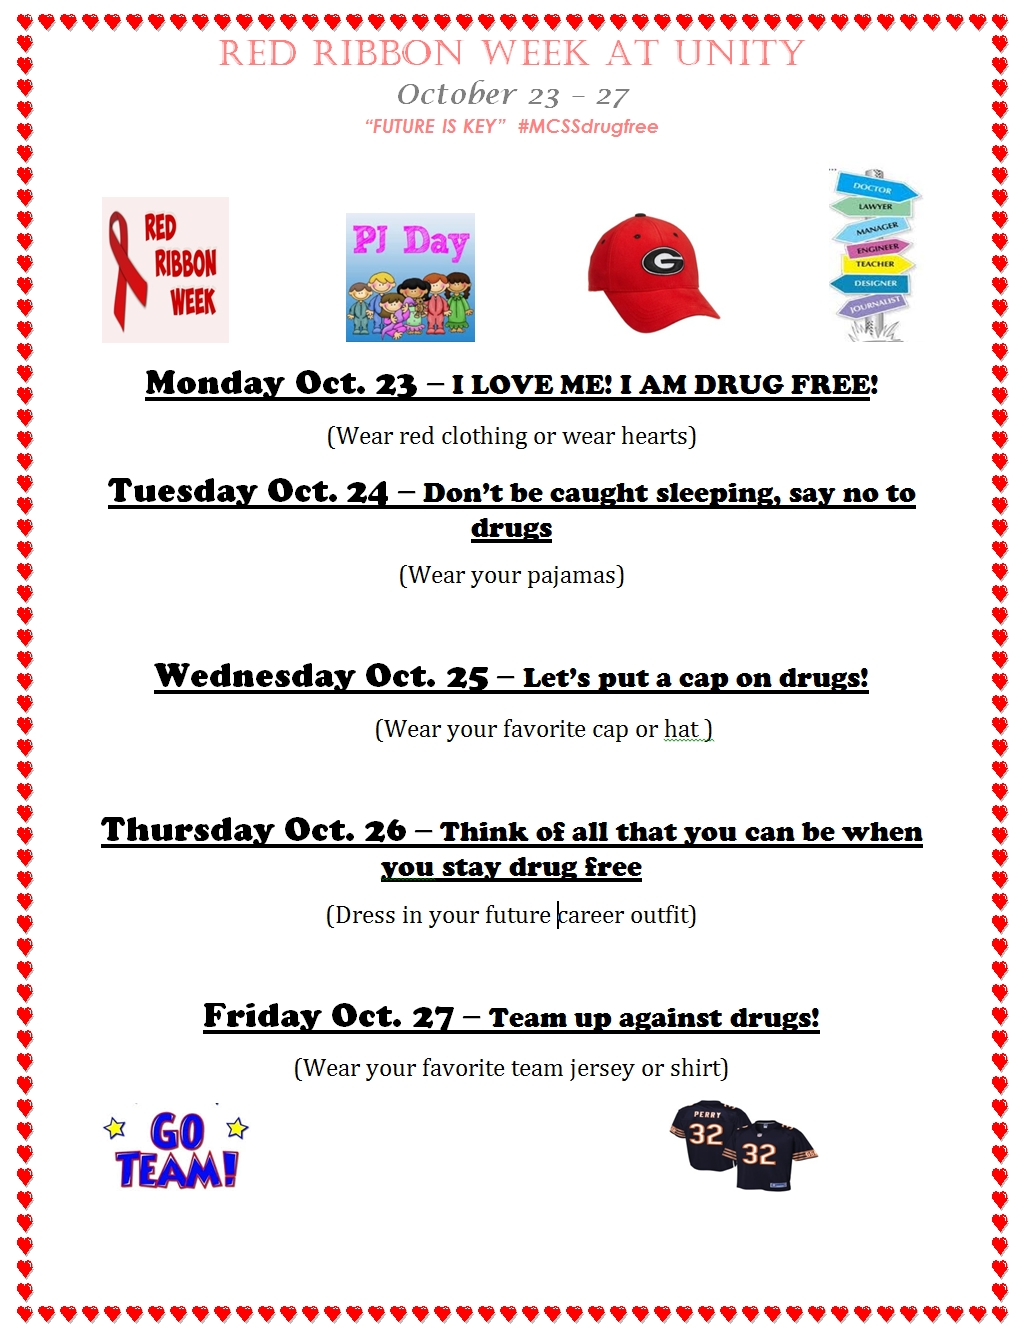 10 Best Red Ribbon Week Ideas For Middle School red ribbon week activities at ues october 23rd 27th unity 2020